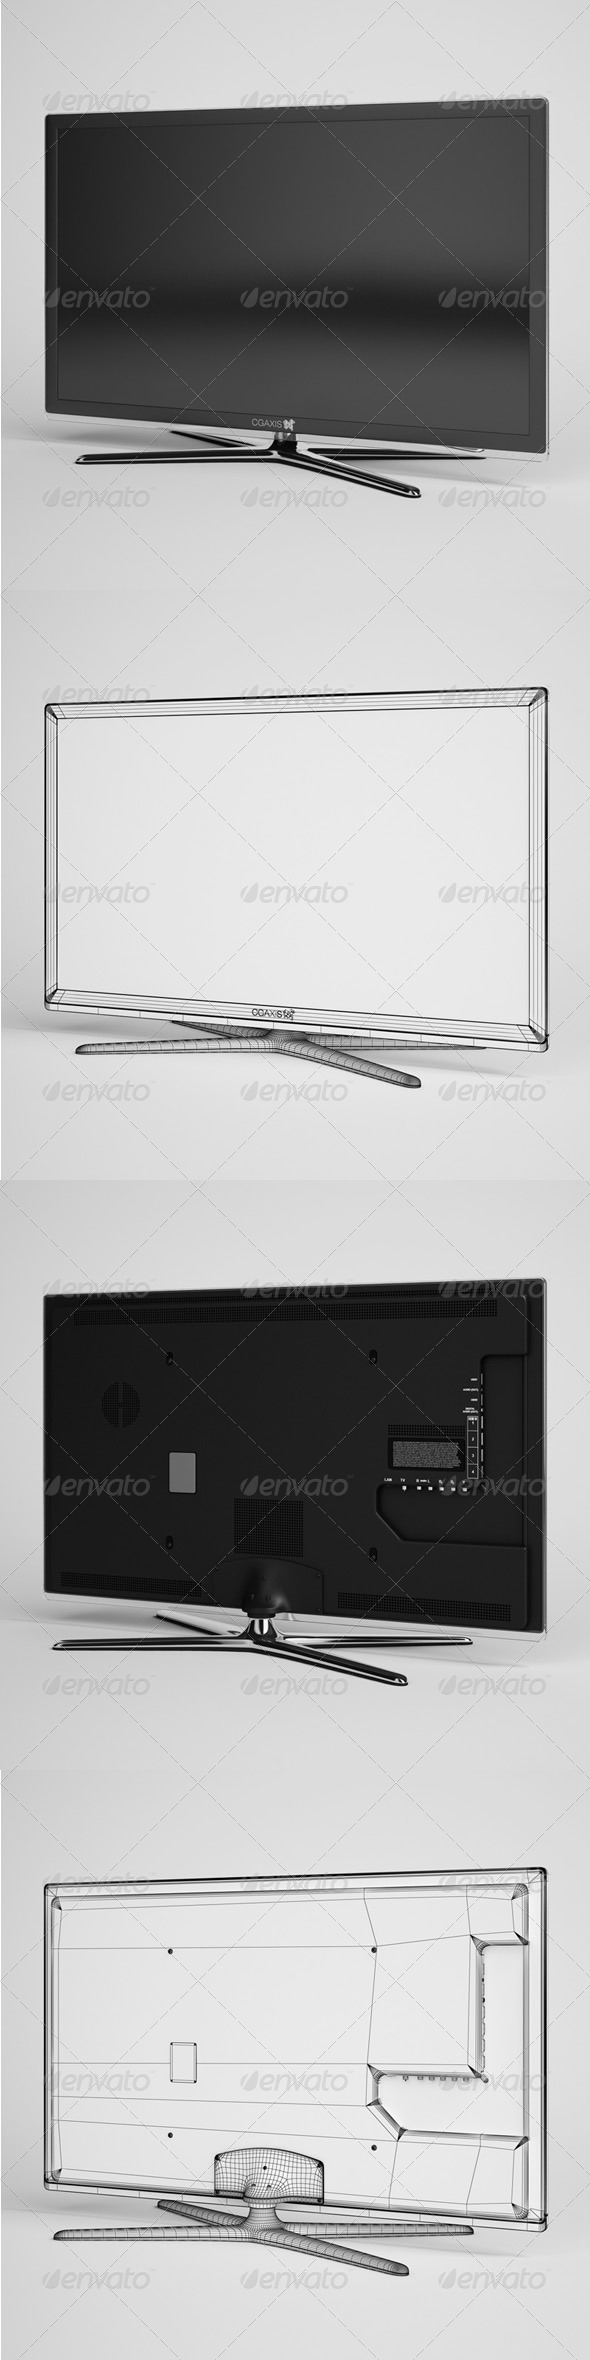 CGAxis TV Flatscreen Electronics 01 - 3DOcean Item for Sale